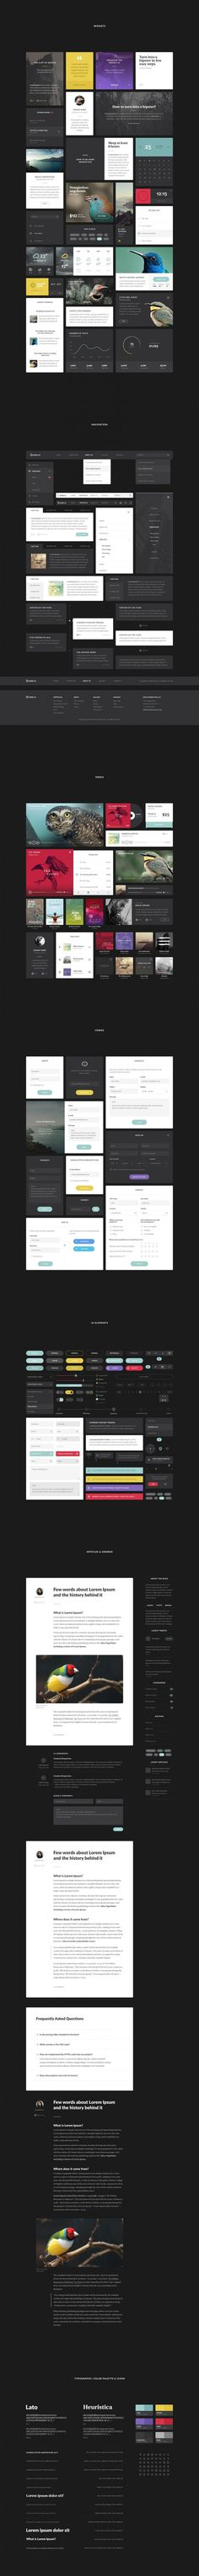 Aves UI Kit #graphs #design #interface #ui #kit